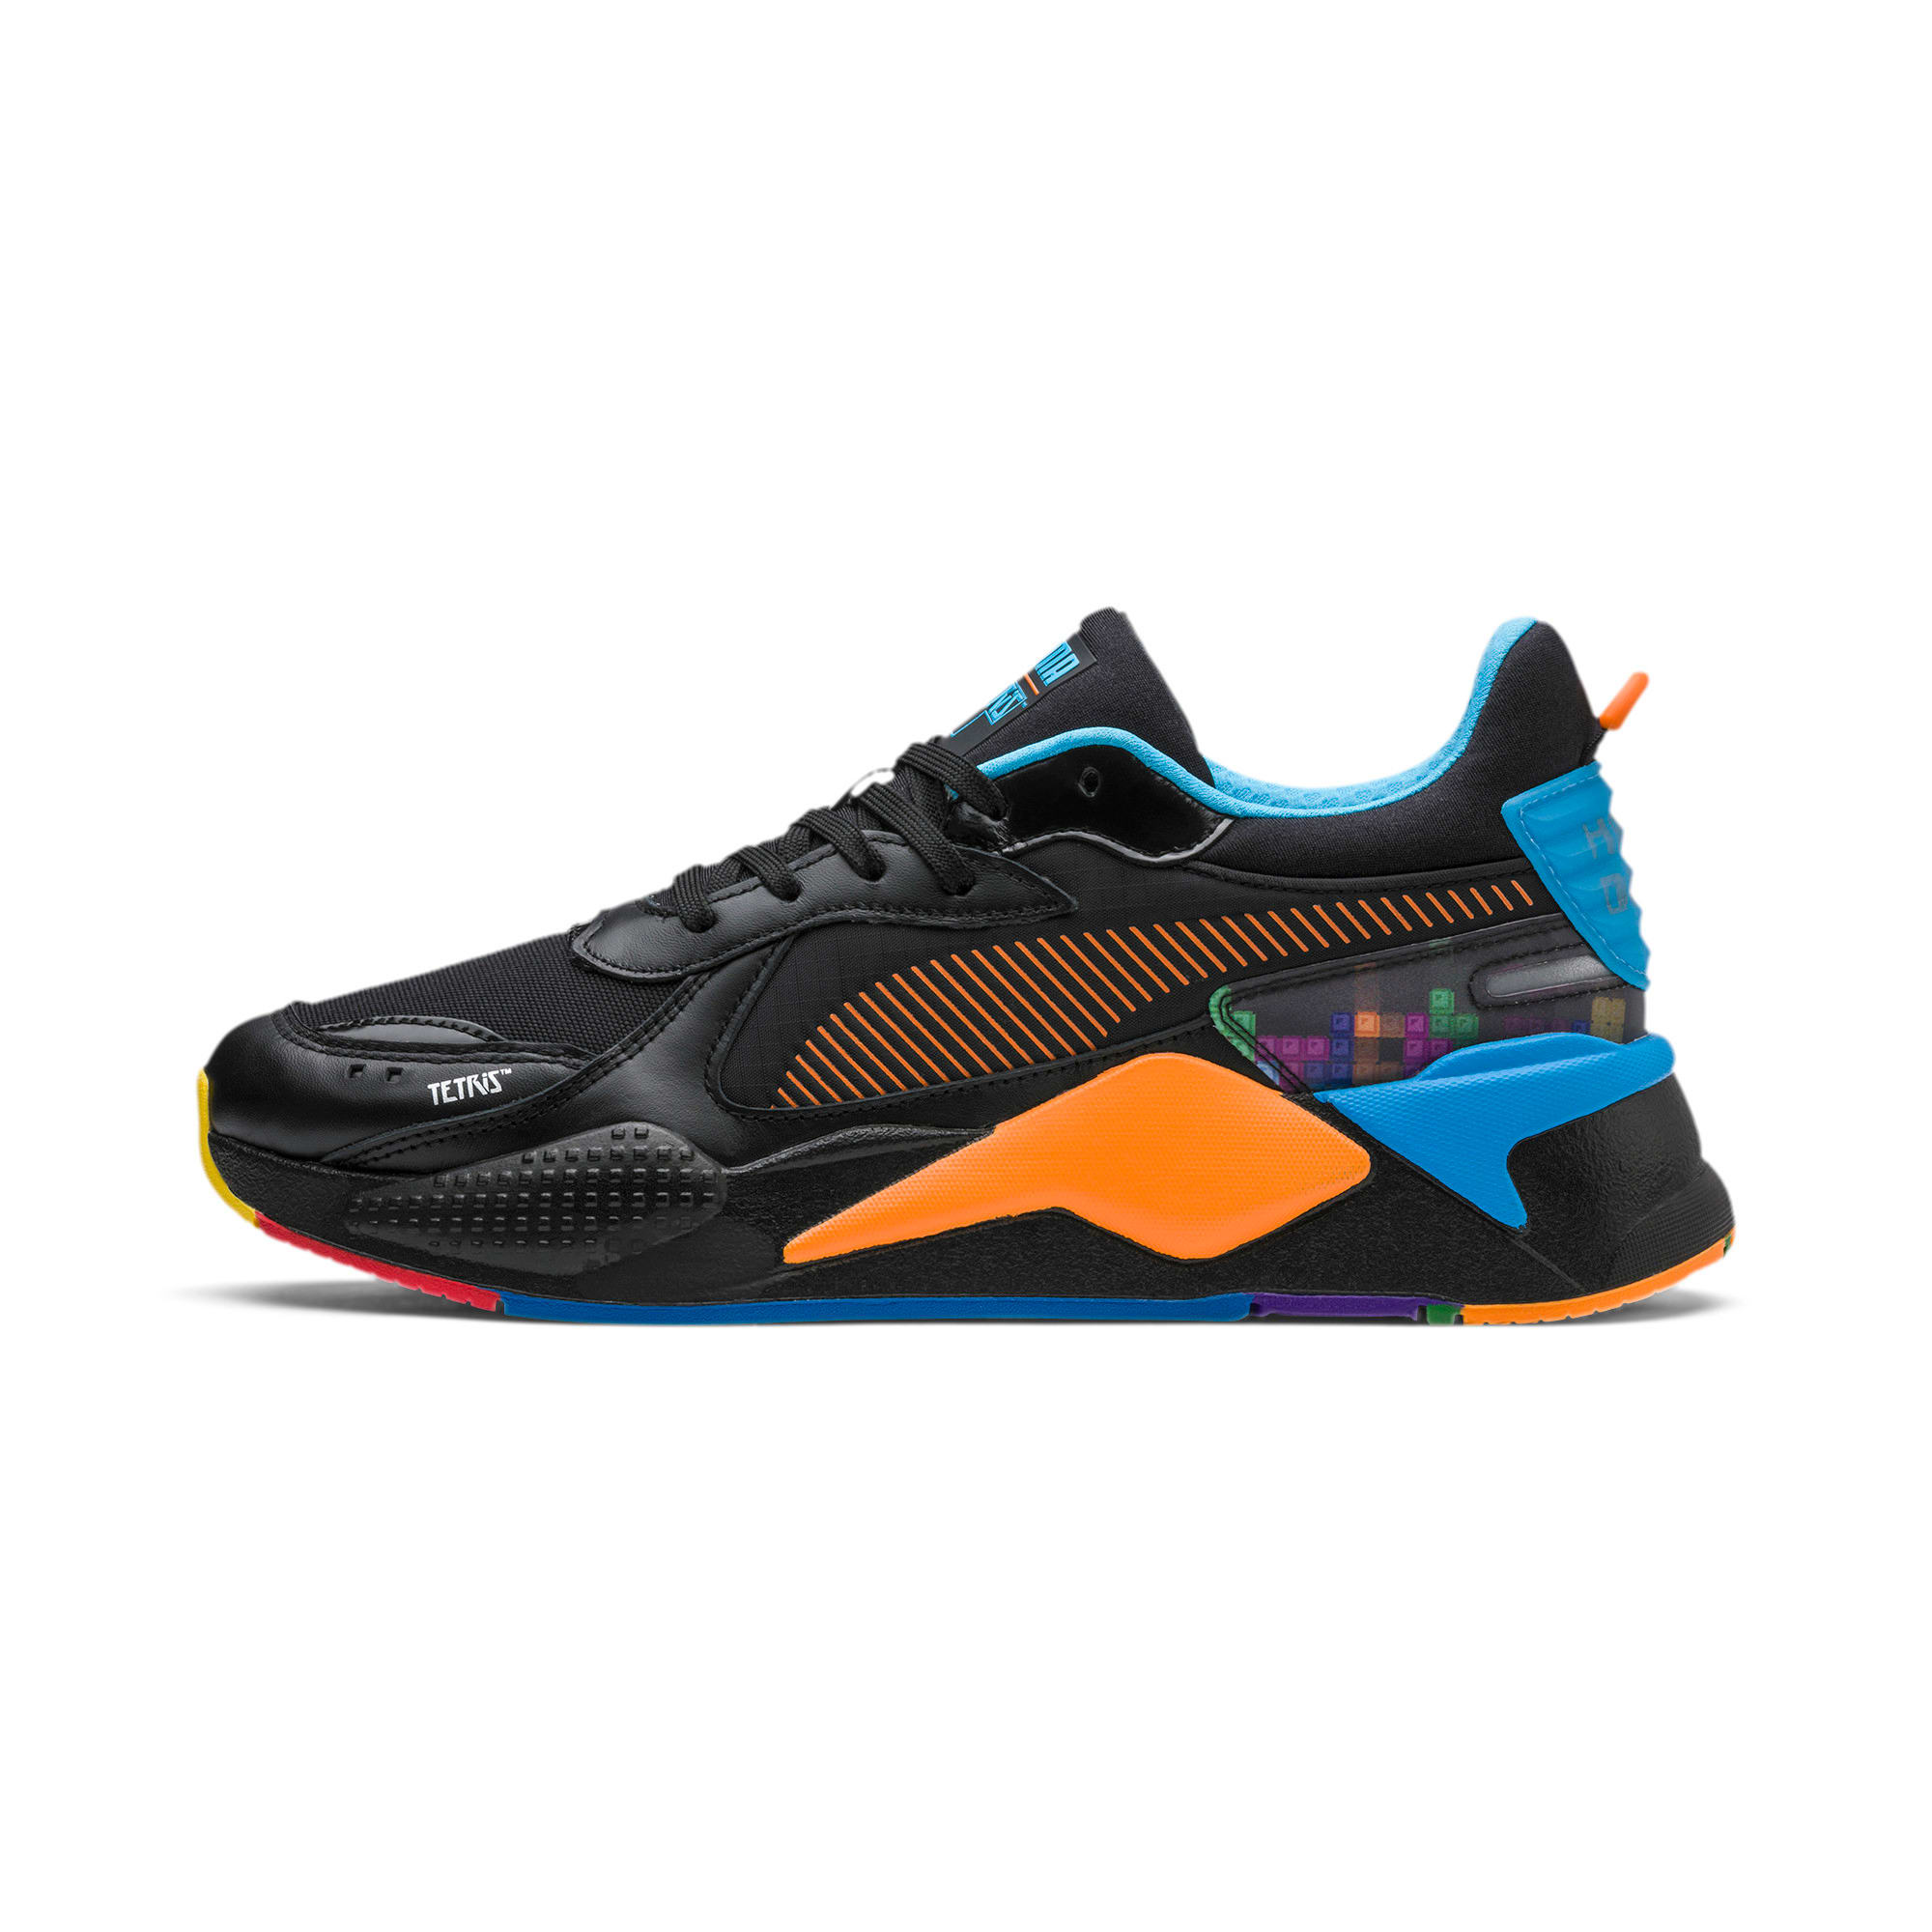 Thumbnail 1 of PUMA x TETRIS RS-X スニーカー, Puma Black-Luminous Blue, medium-JPN